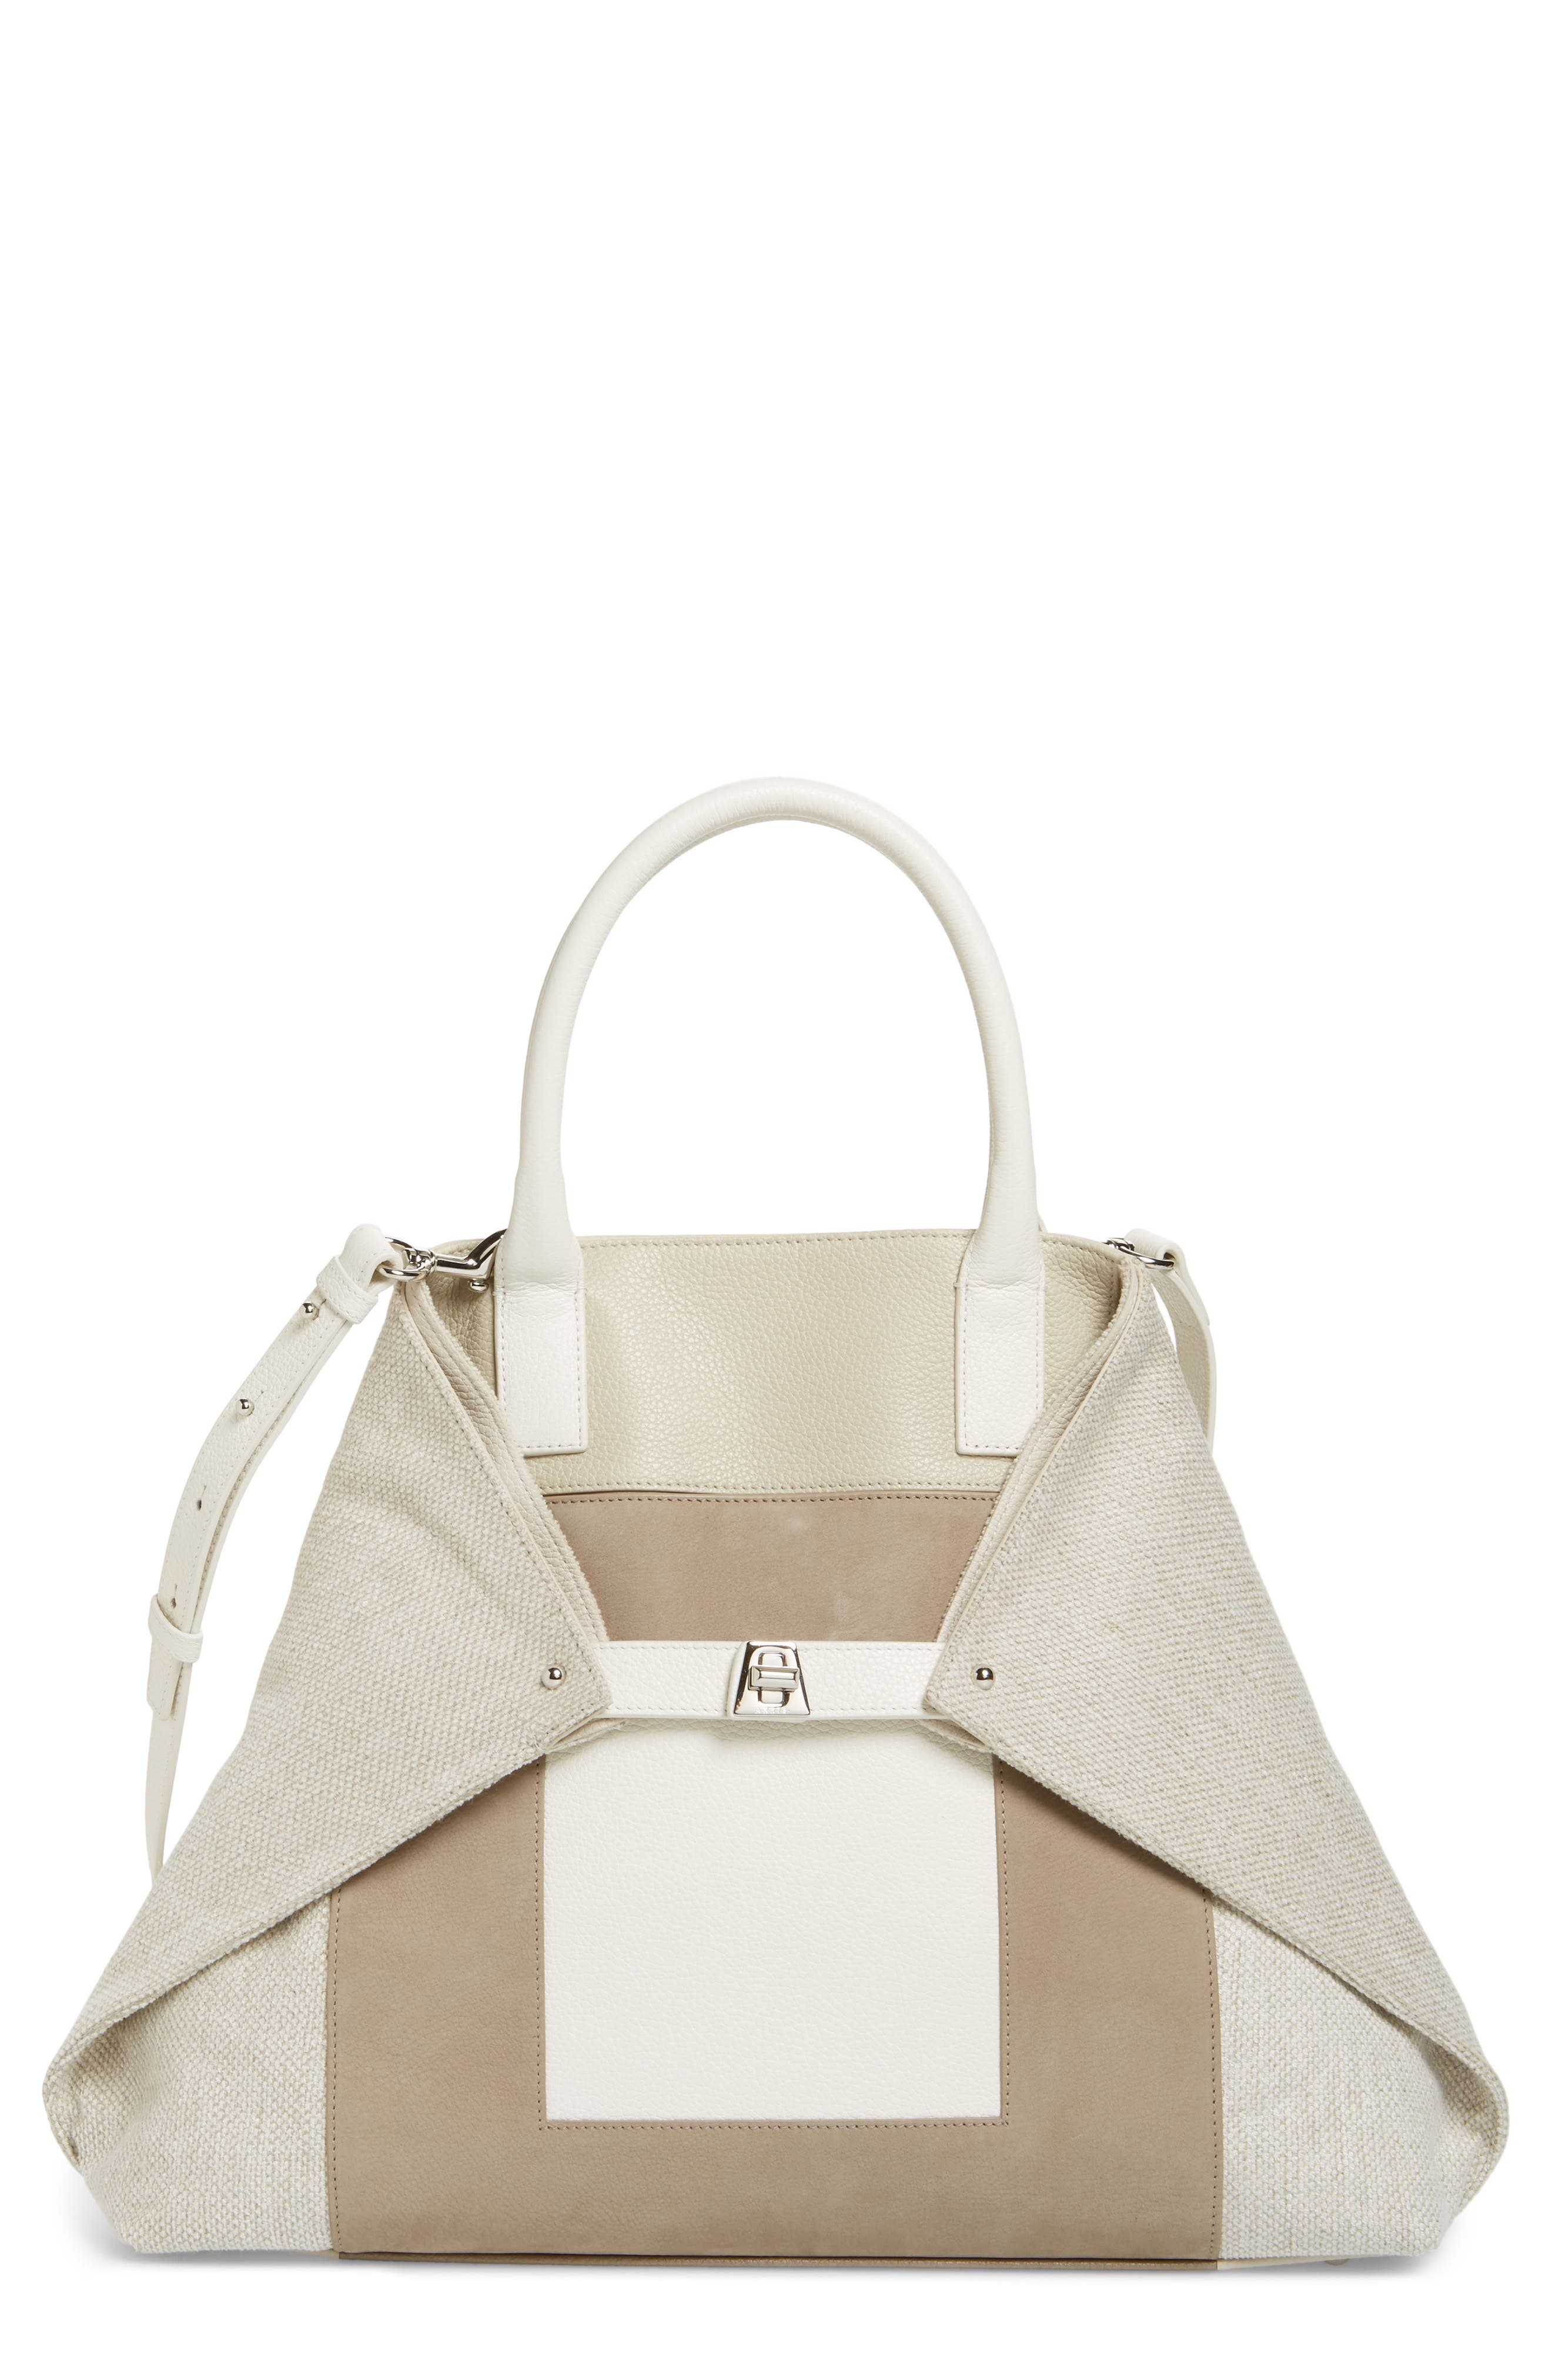 Medium AI Leather & Canvas Tote,                             Main thumbnail 1, color,                             283